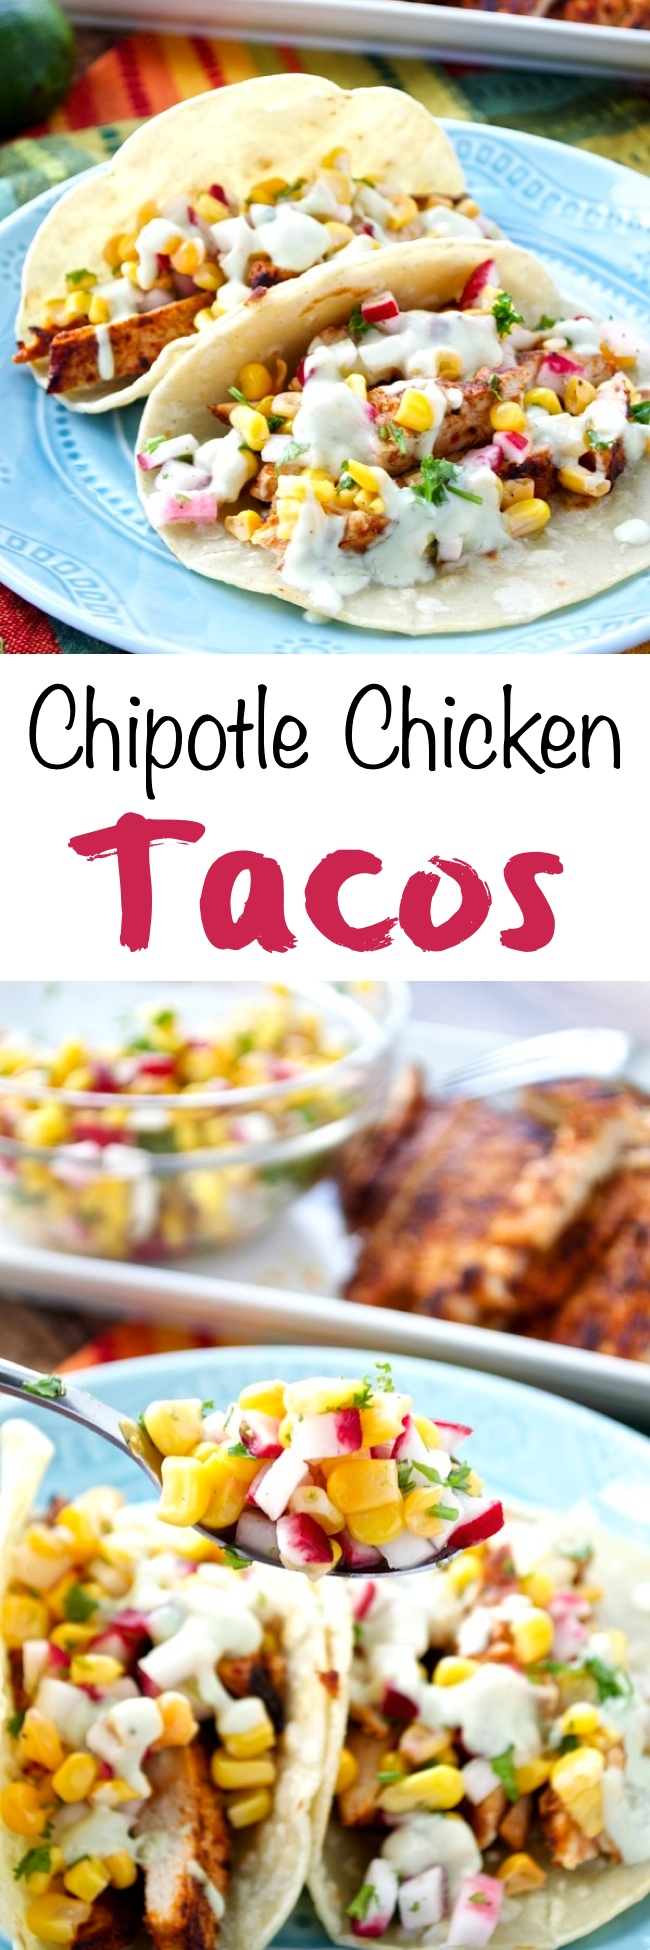 Chipotle Chicken Tacos Pin